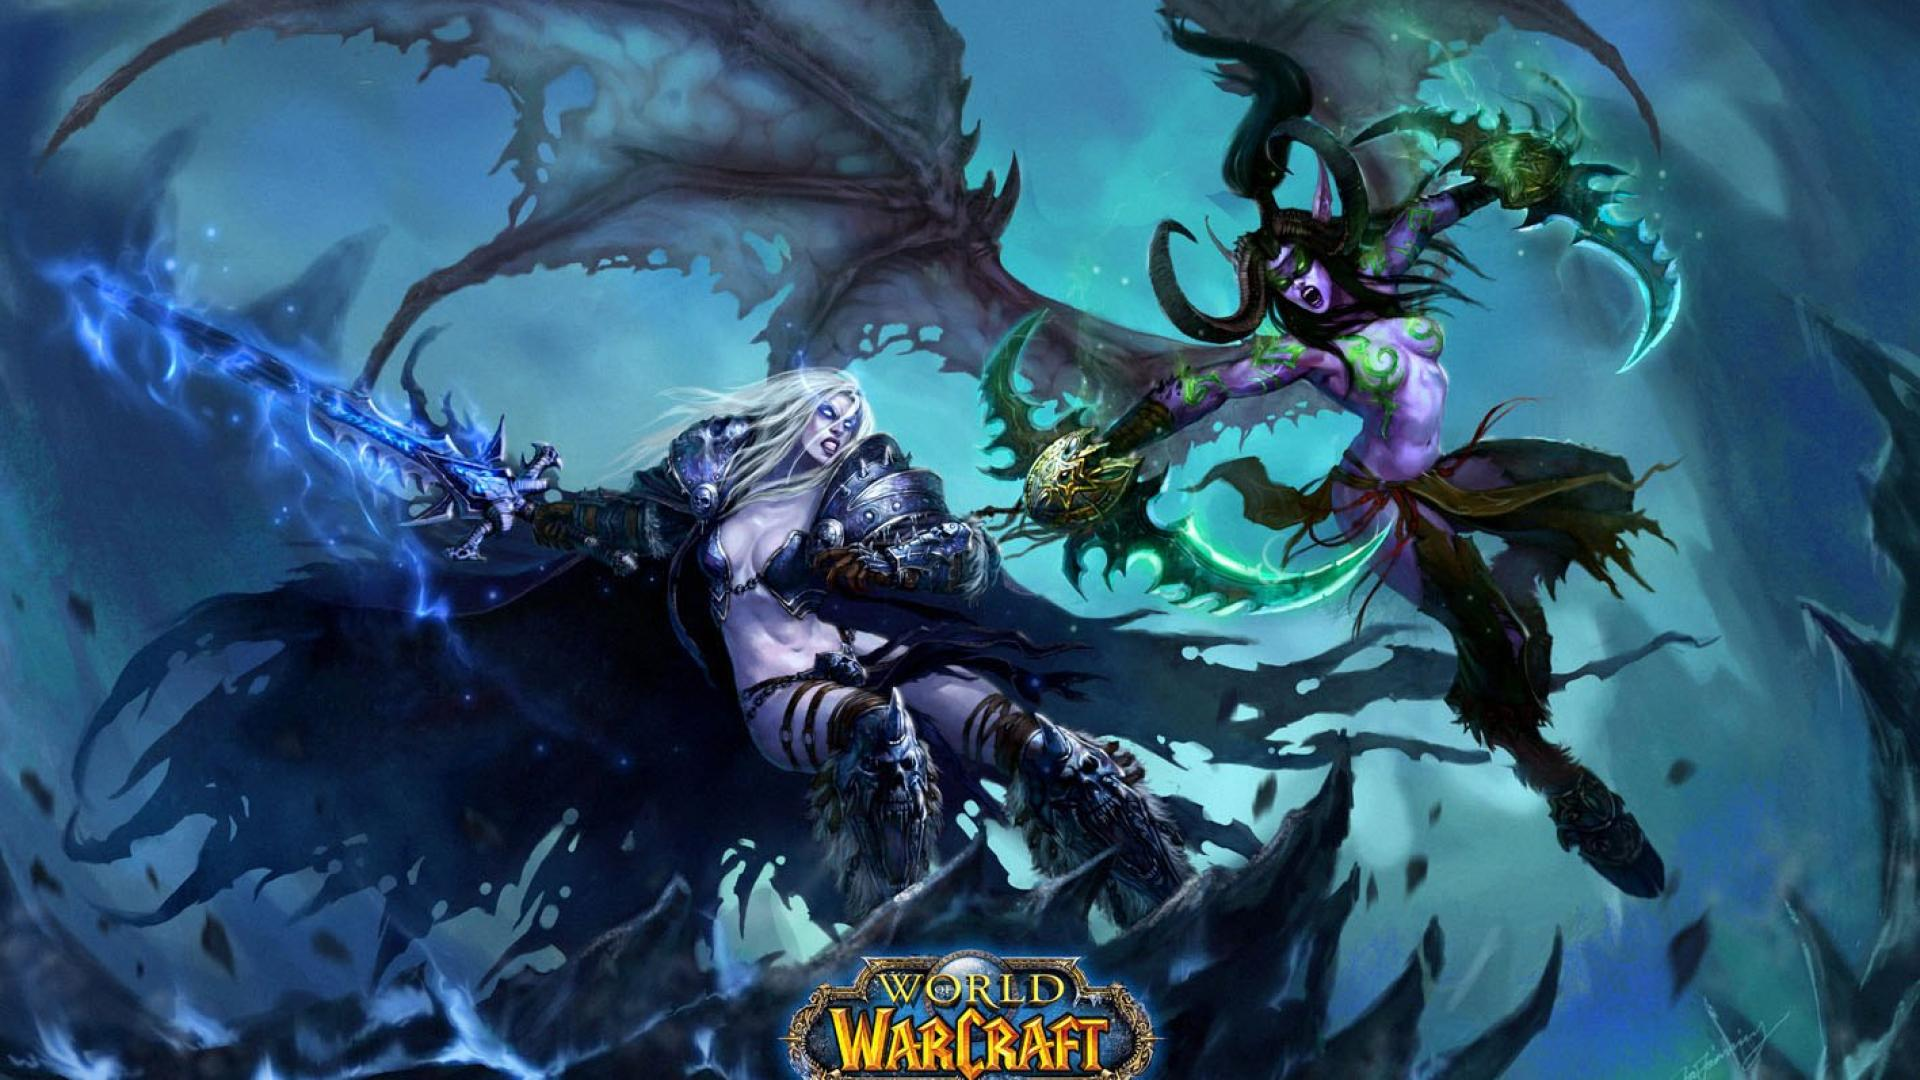 World Of Warcraft Wallpaper Desktop Background ~ Sdeerwallpaper